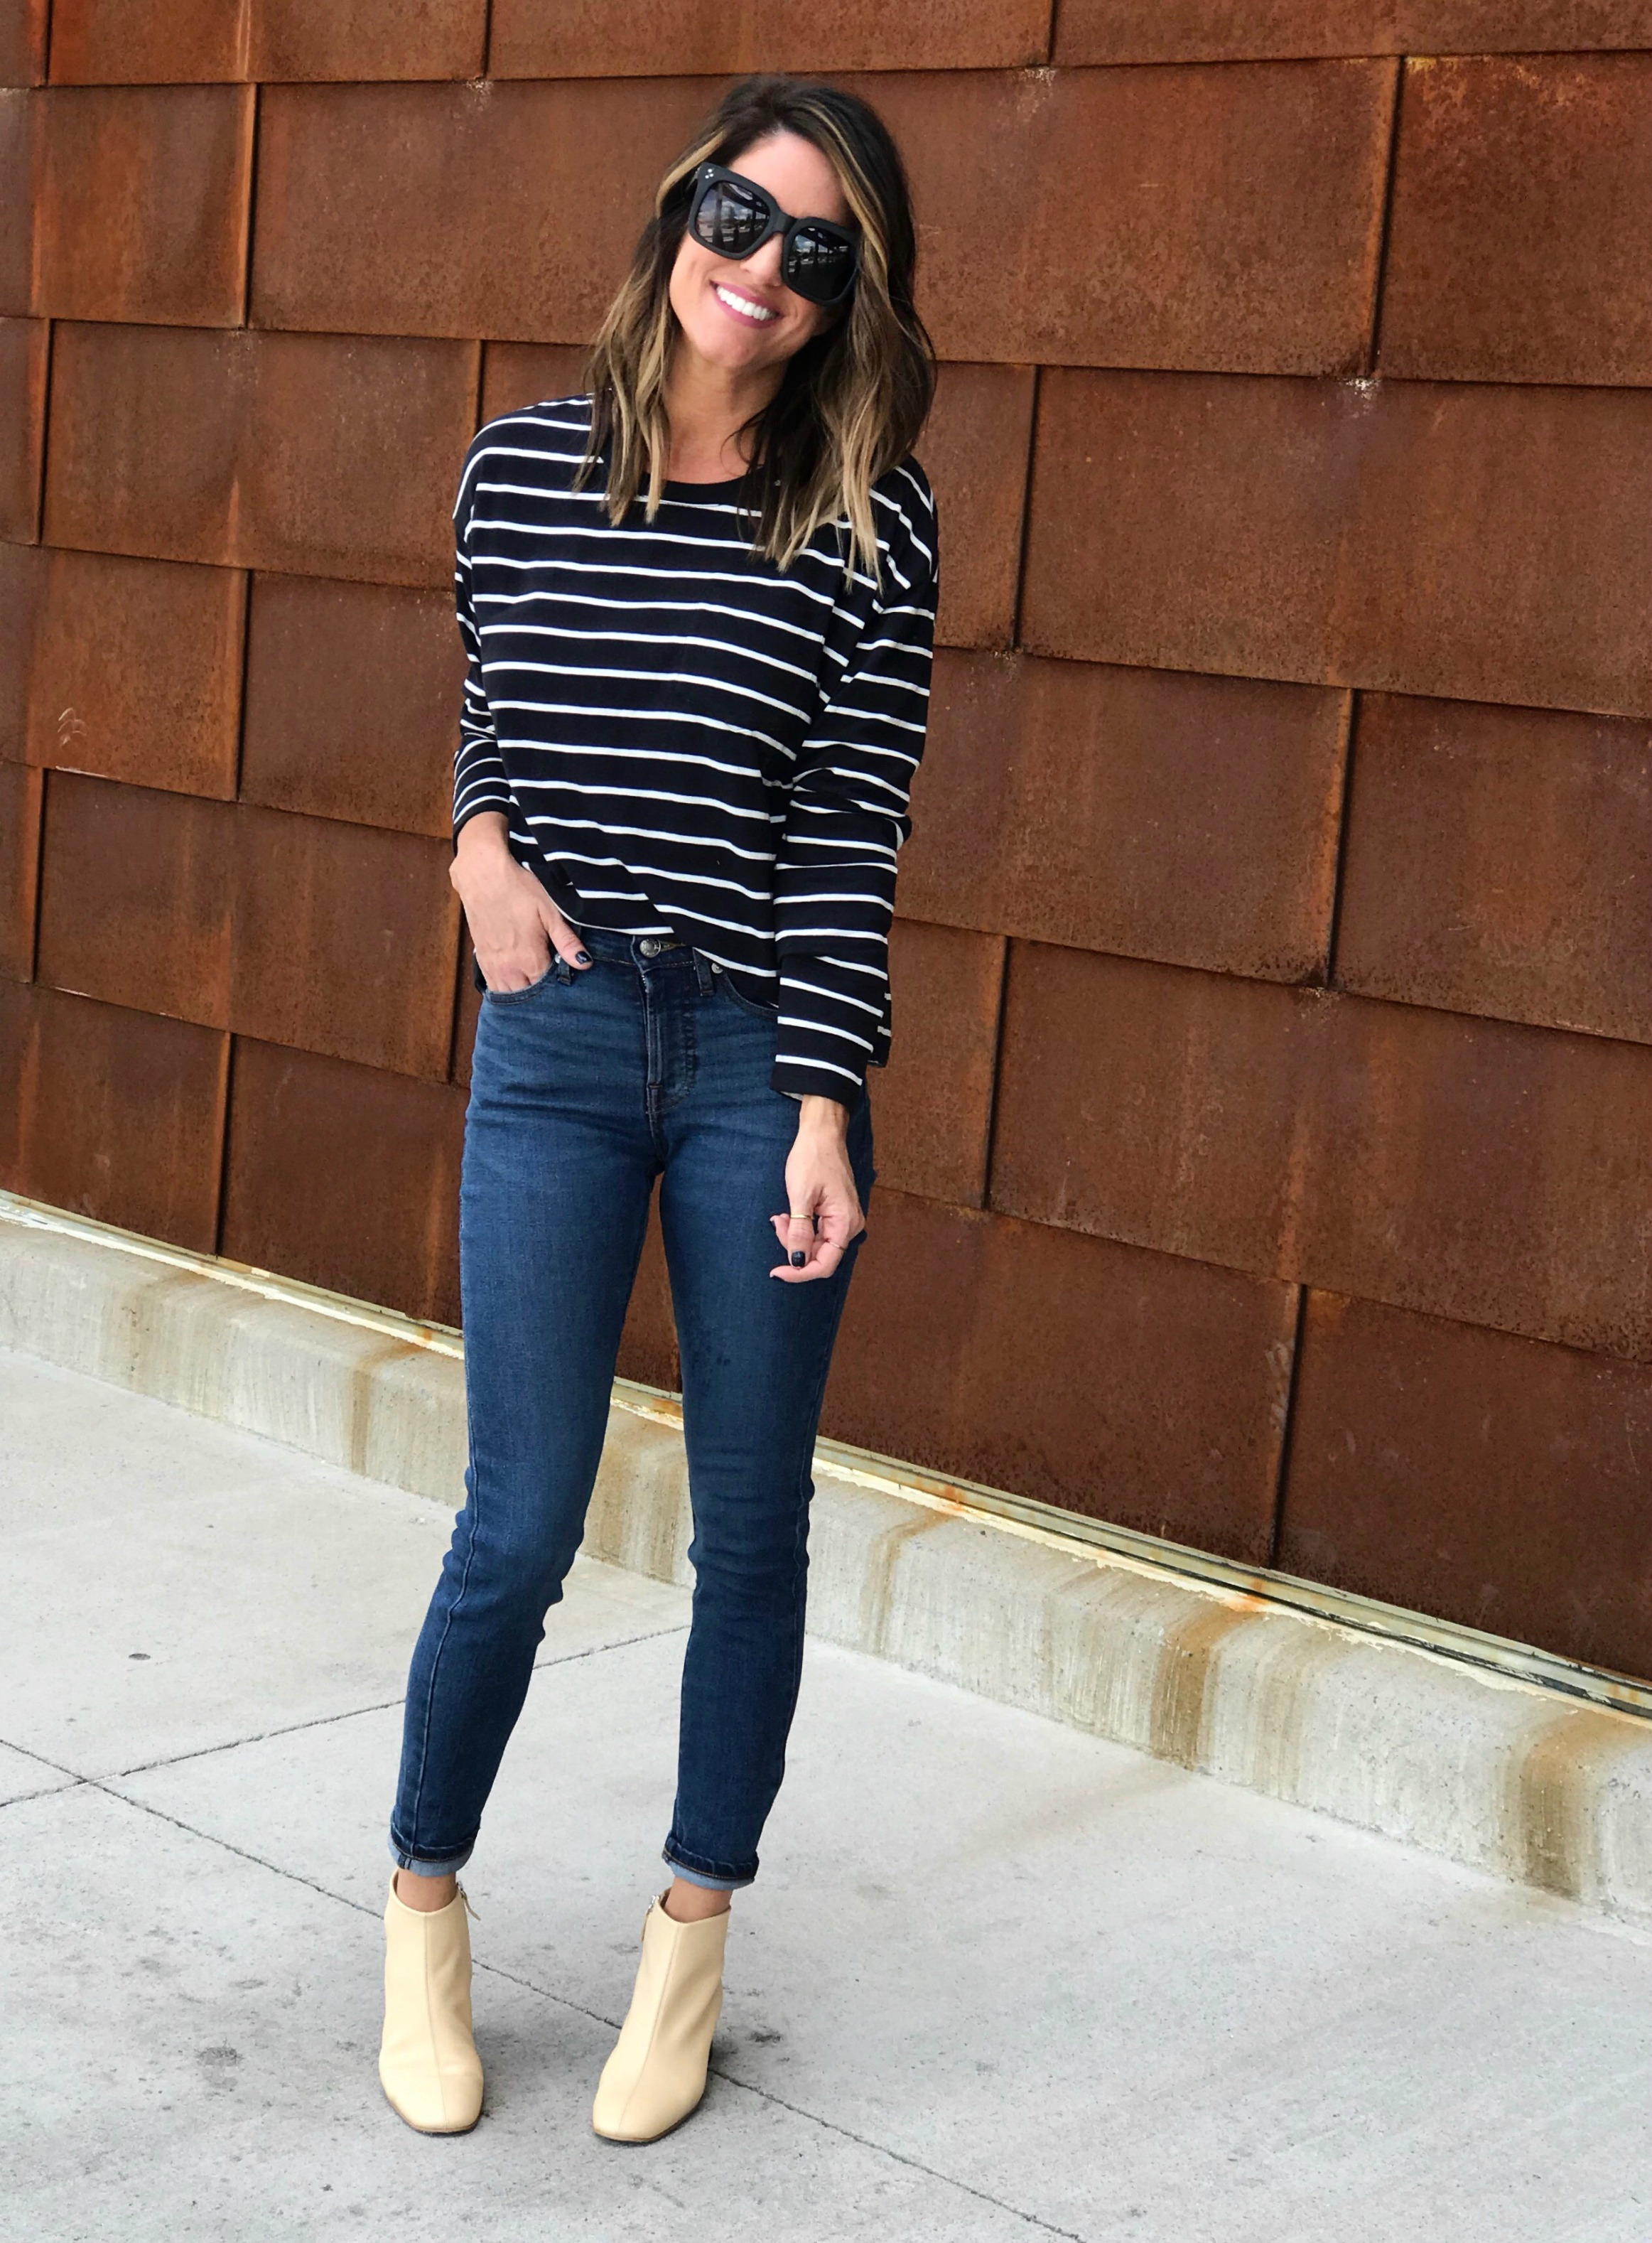 Jeans and tee